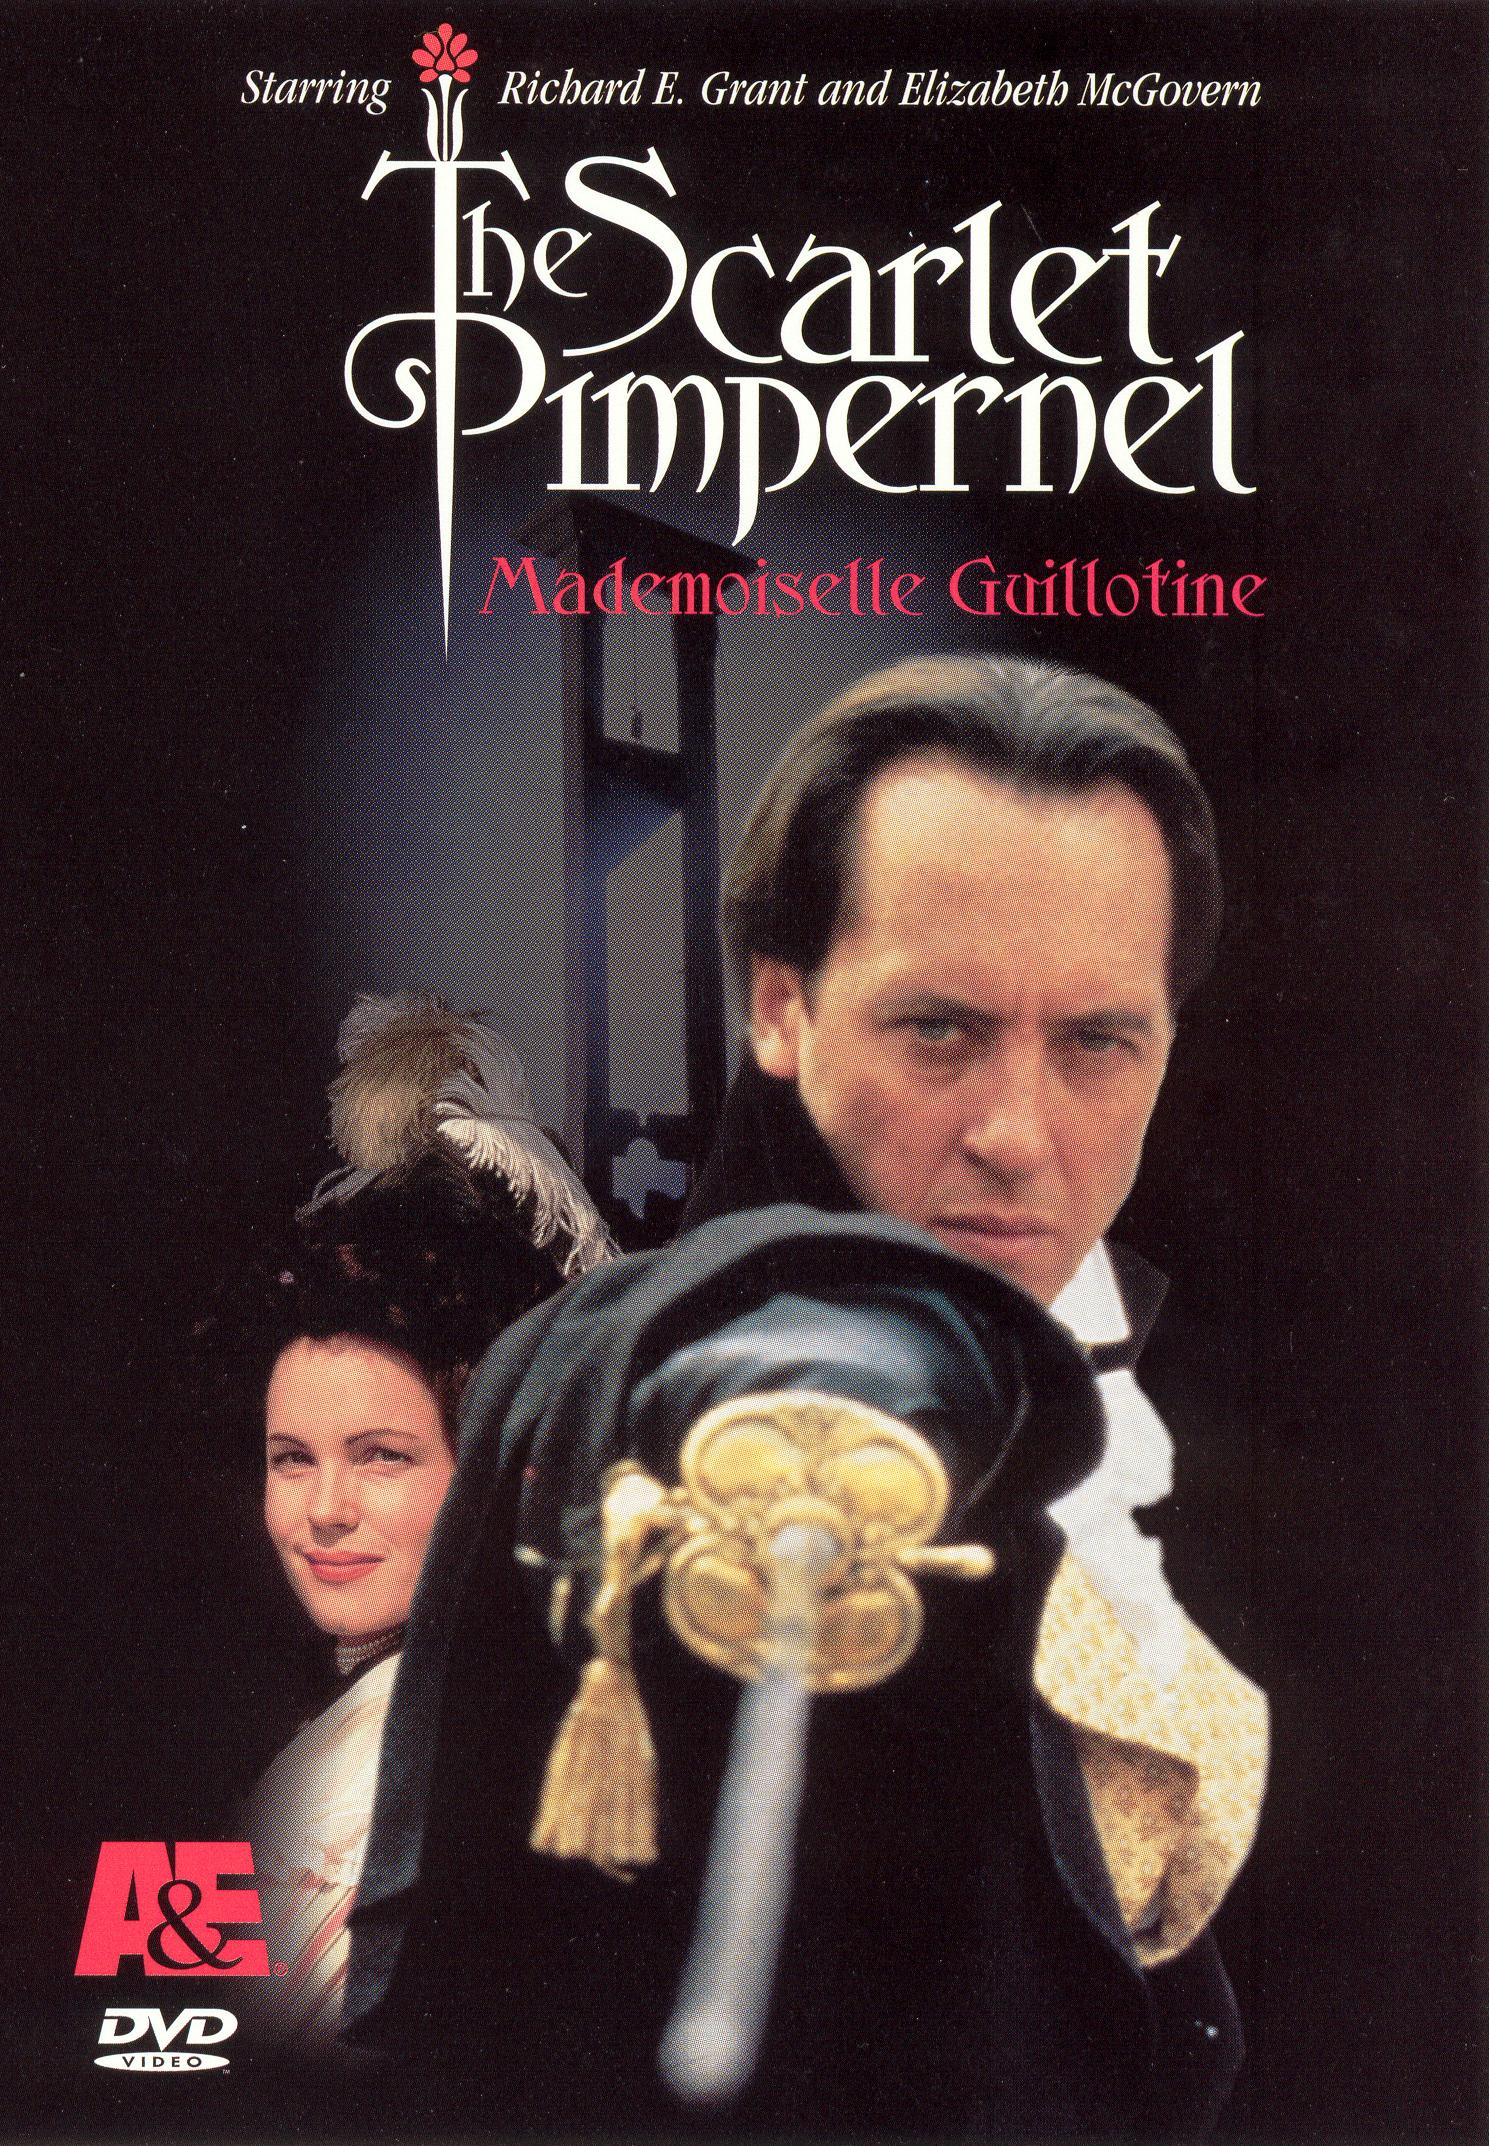 The Scarlet Pimpernel, Book 2: Mademoiselle Guillotine